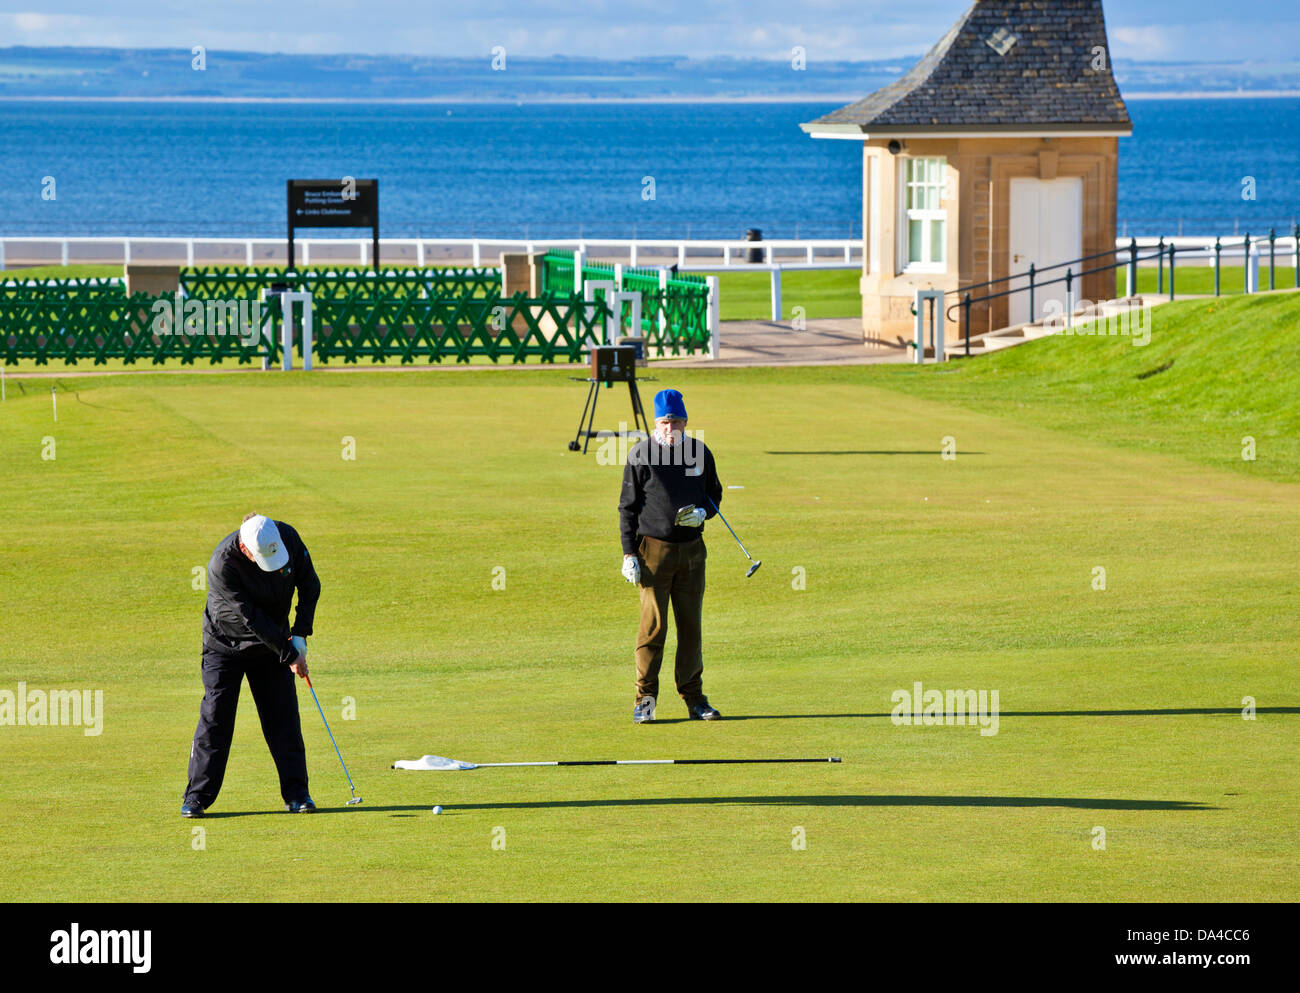 Two golfers putting at The Royal and Ancient Golf Club of St Andrews golf course St Andrews Fife Scotland UK GB - Stock Image